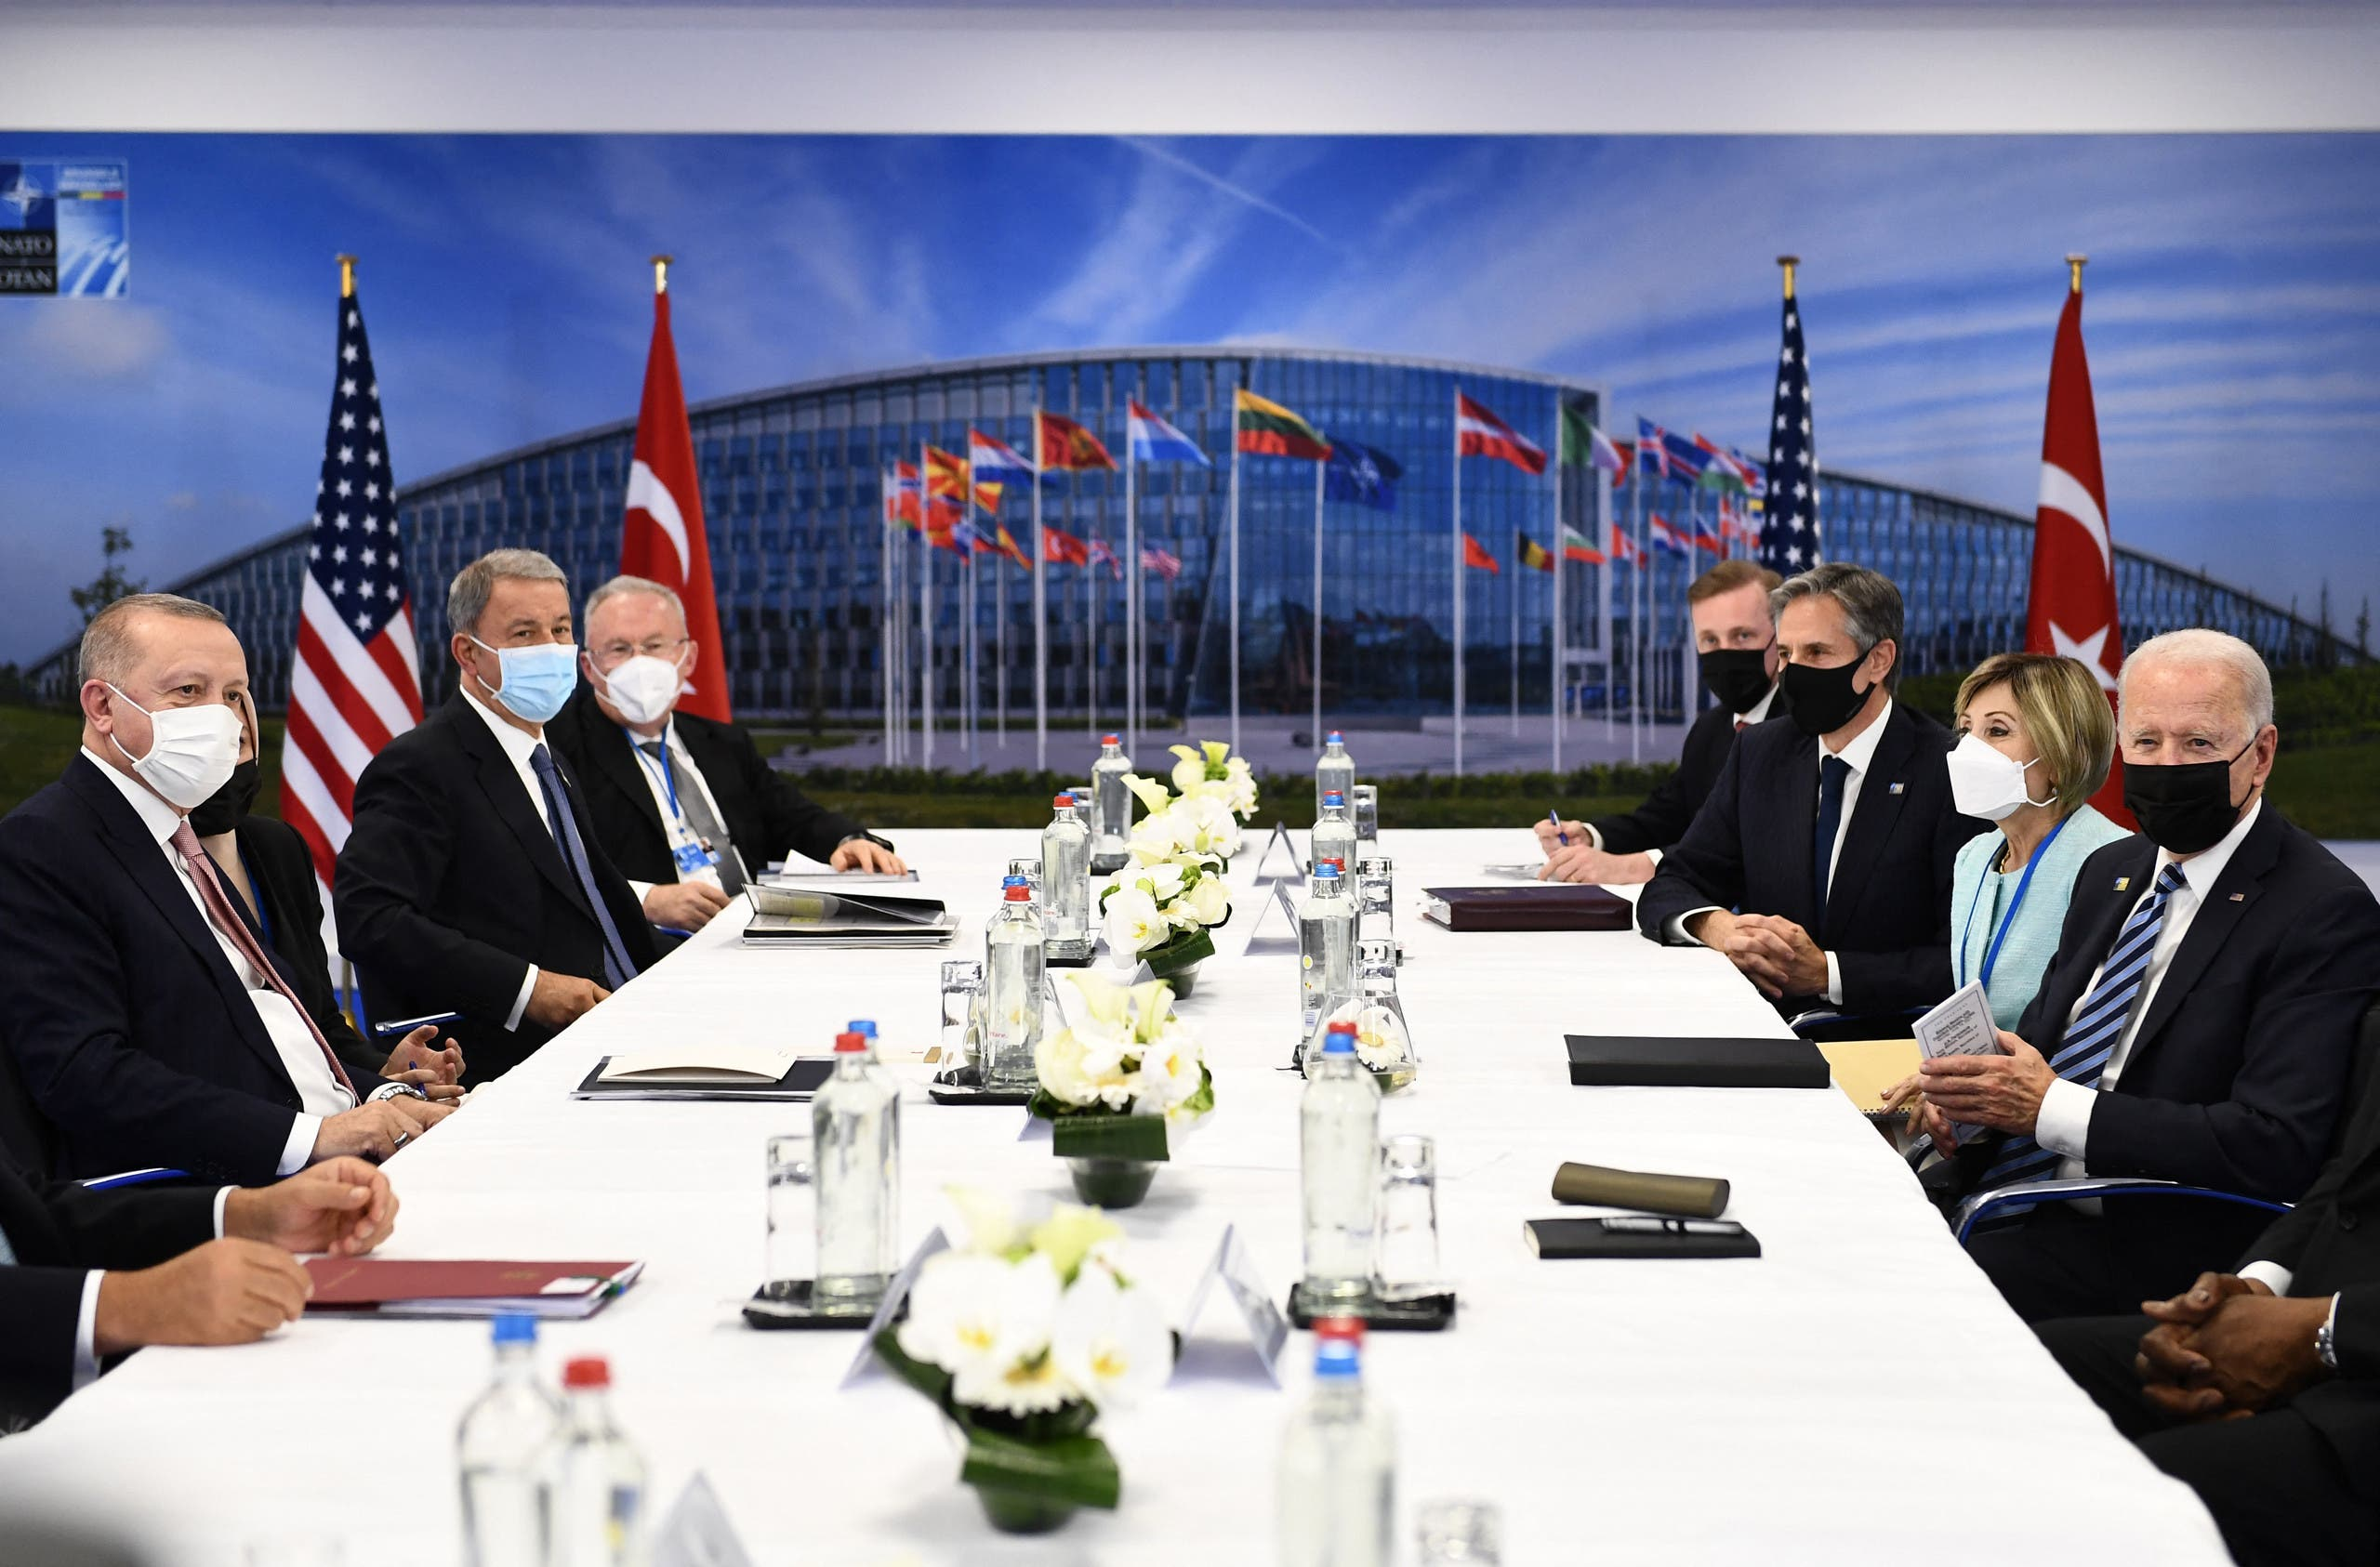 Files are stuck in between.  No solutions were proposed at the Biden Erdogan meeting